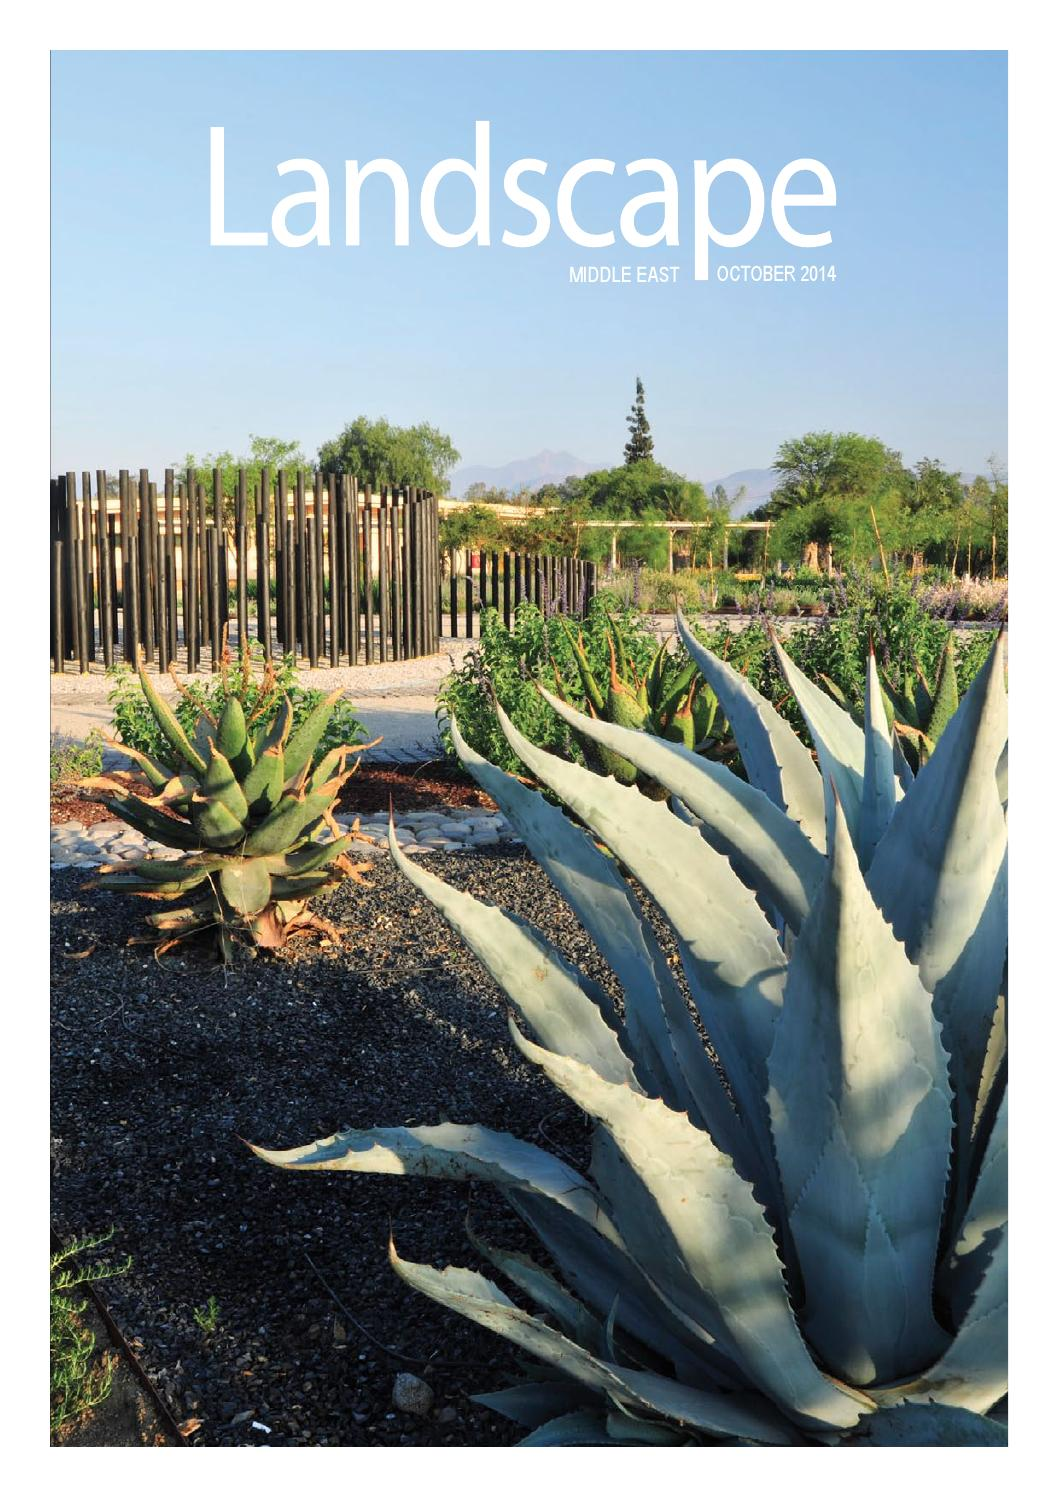 Landscape Magazine October 2014 By Allan Castro Issuu